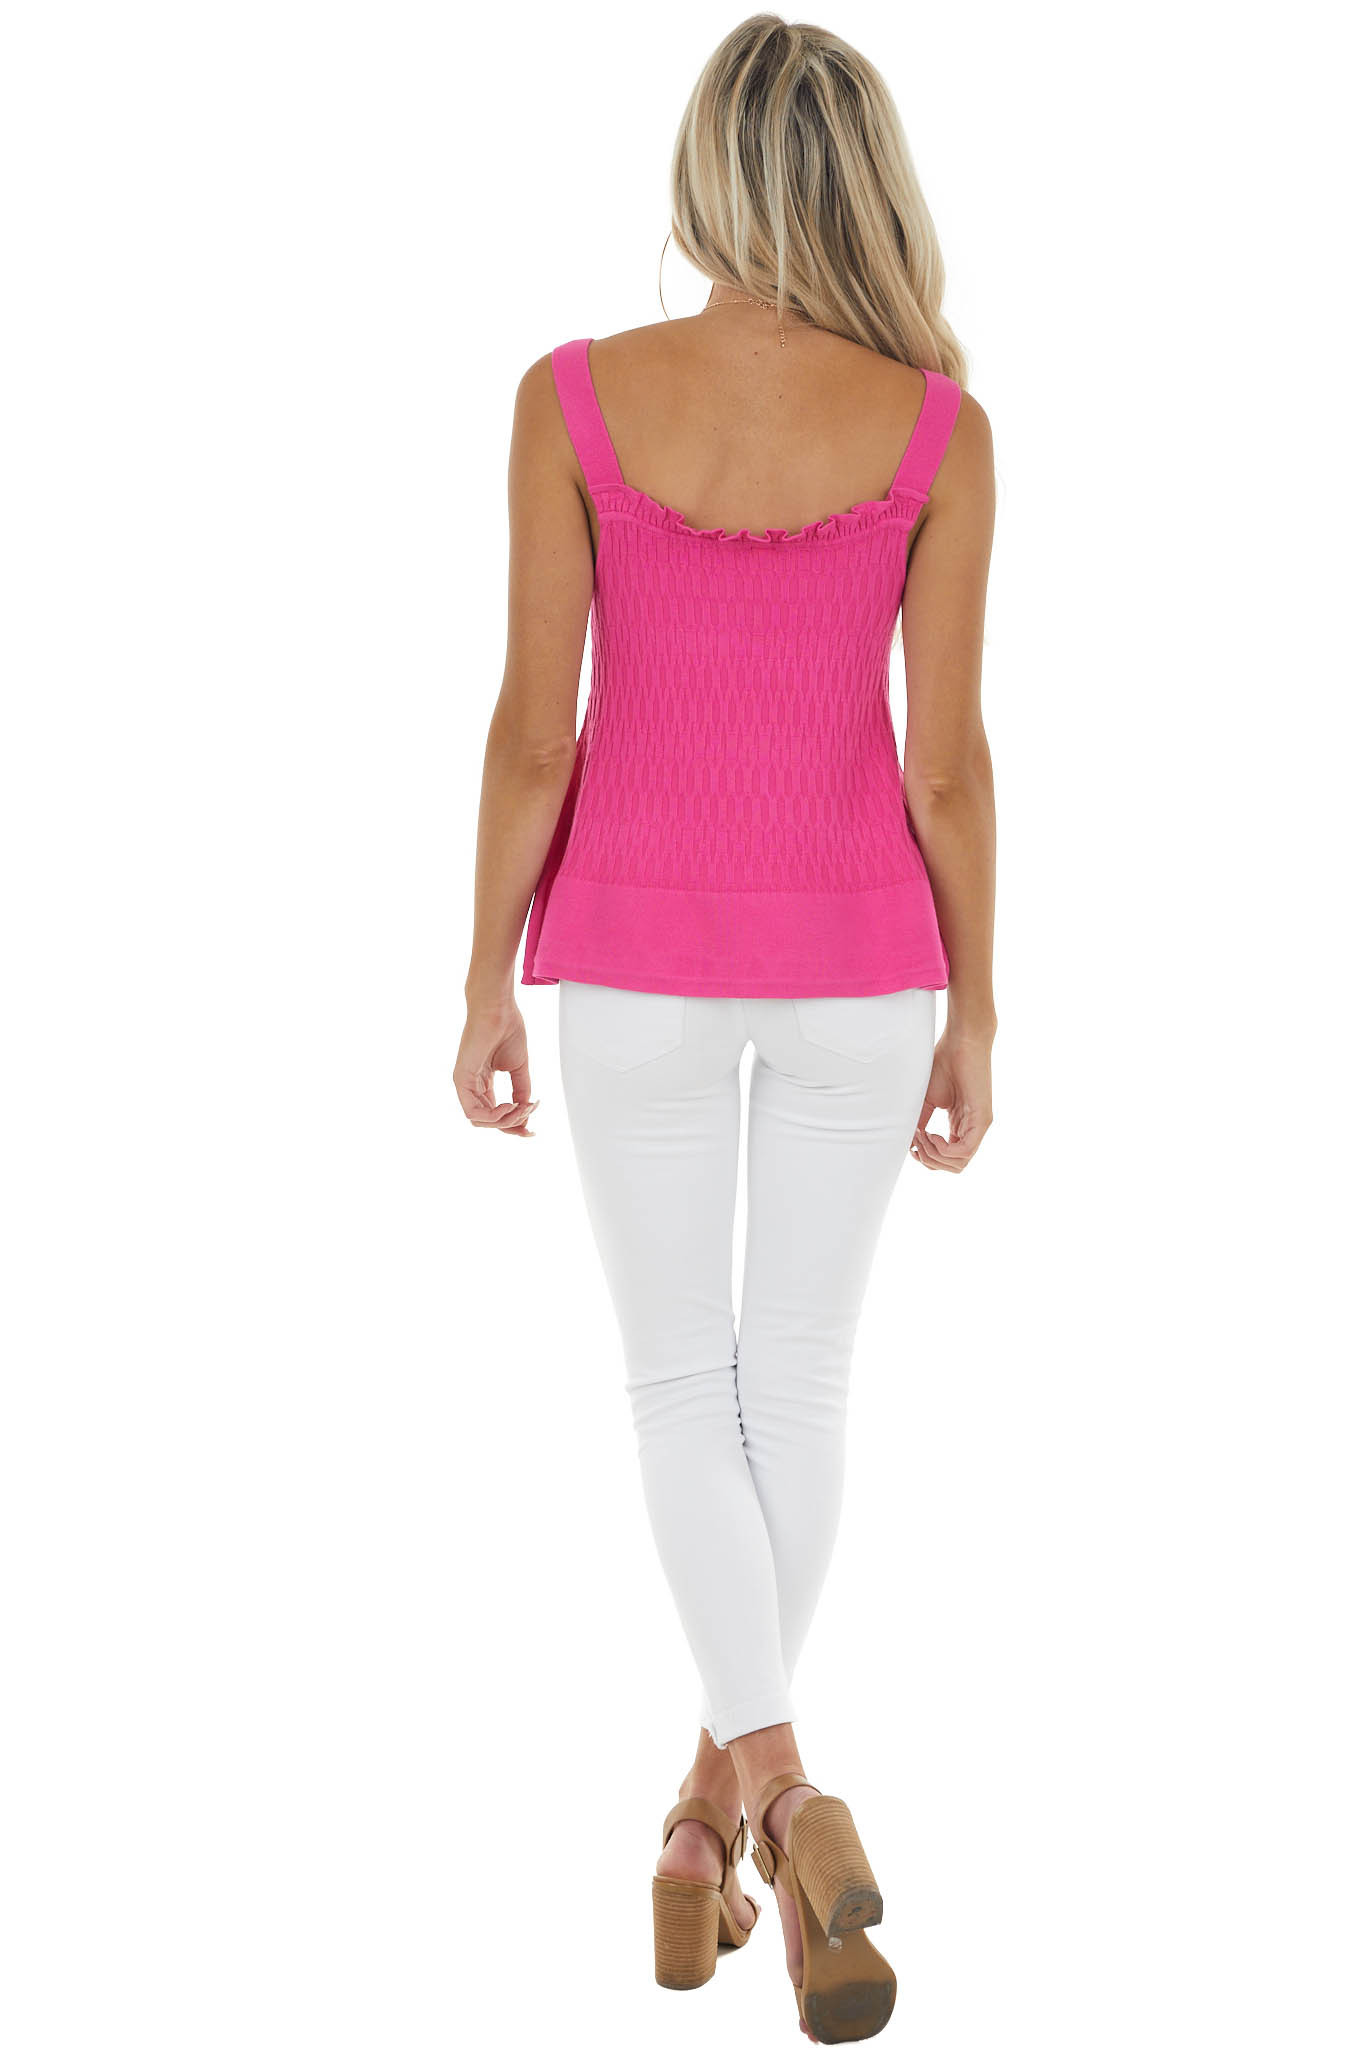 Fuchsia Sleeveless Textured Knit Top with Square Neckline